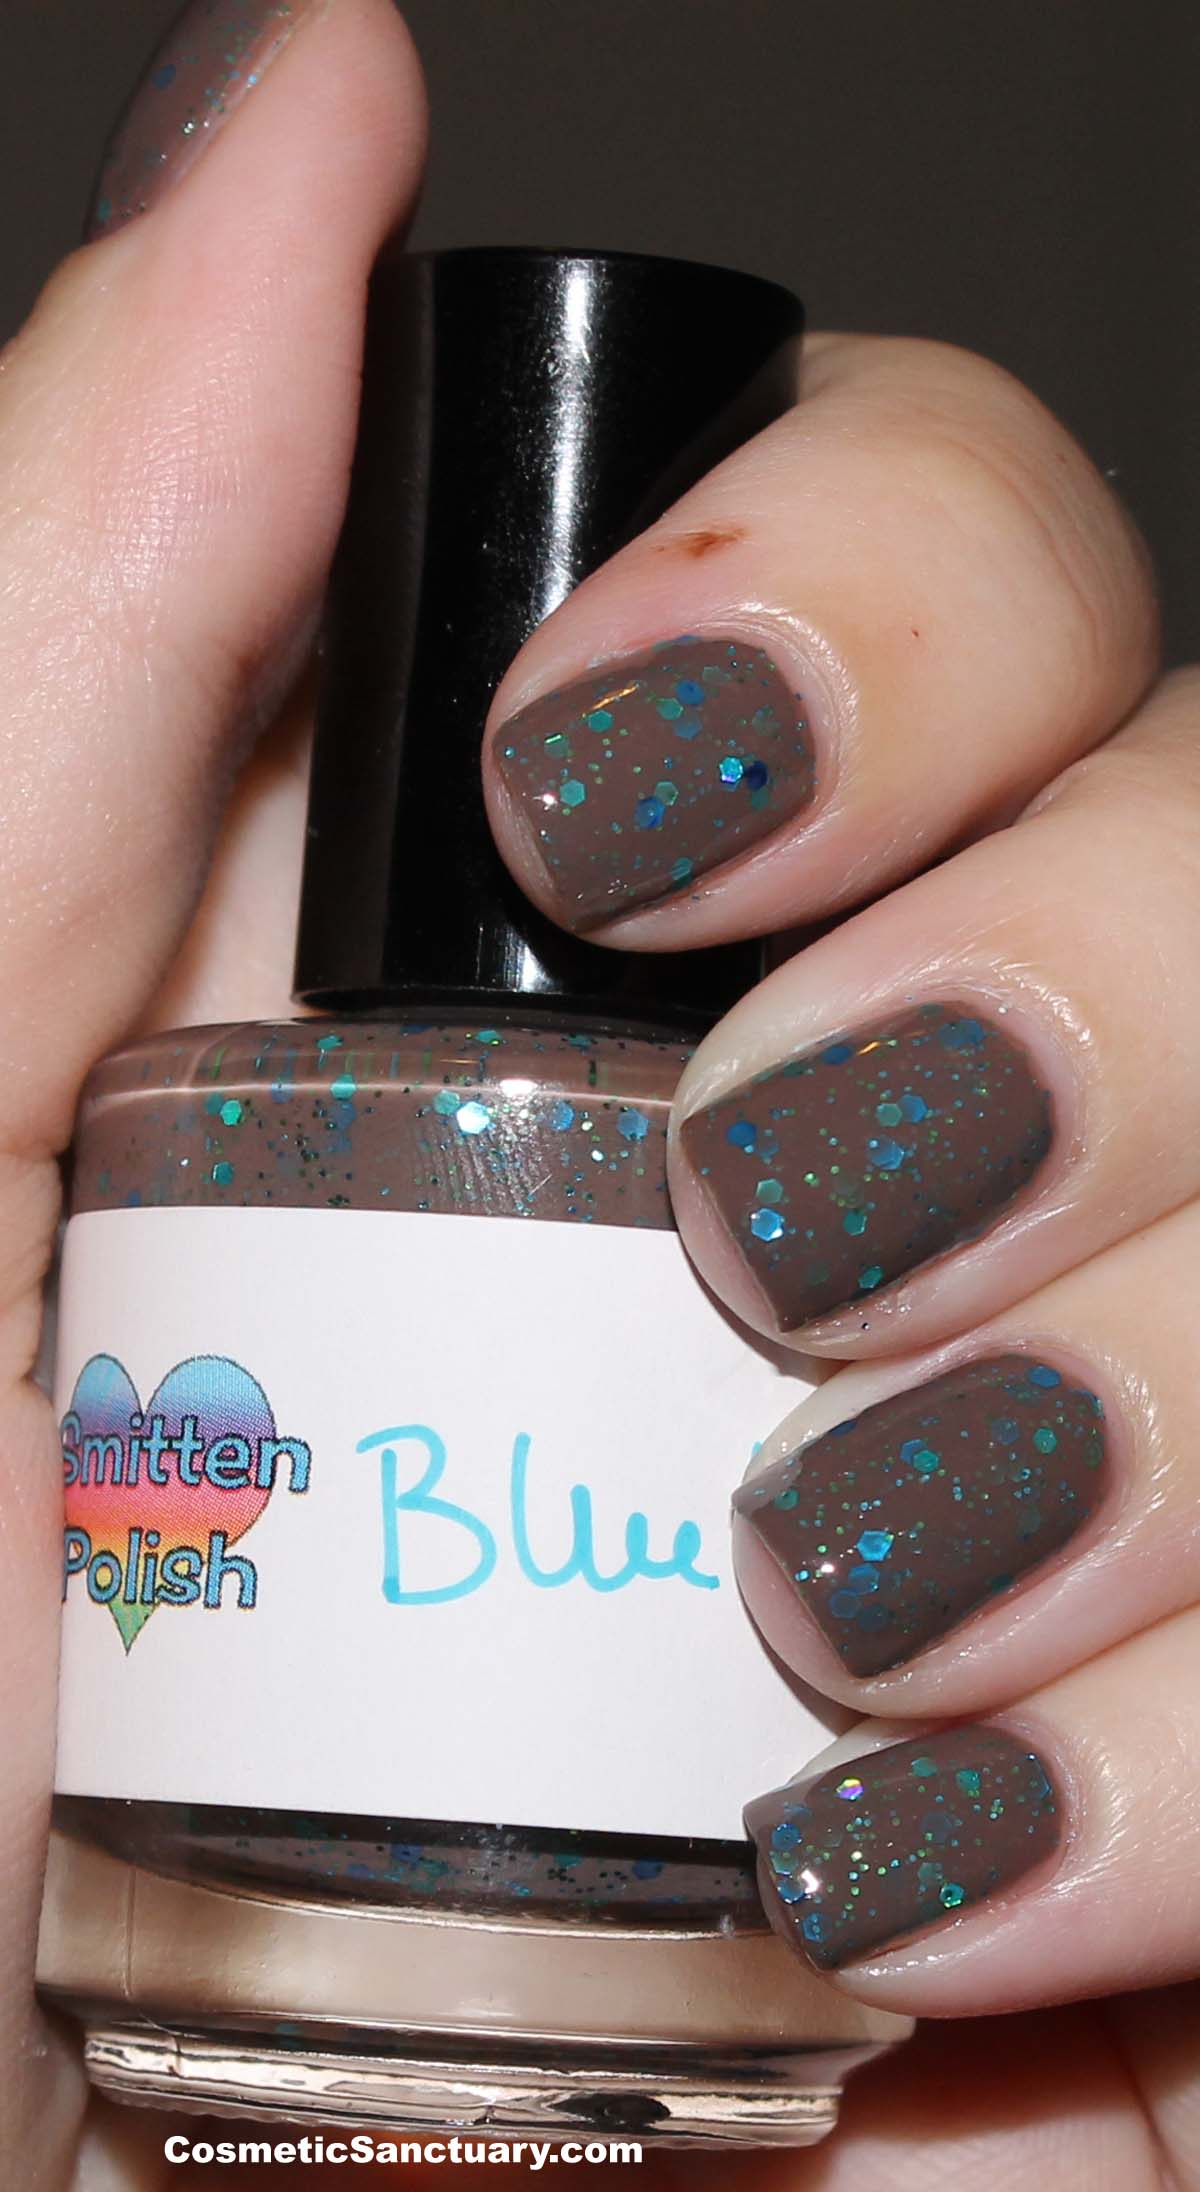 Smitten Polish – Bluebird Swatch and Review